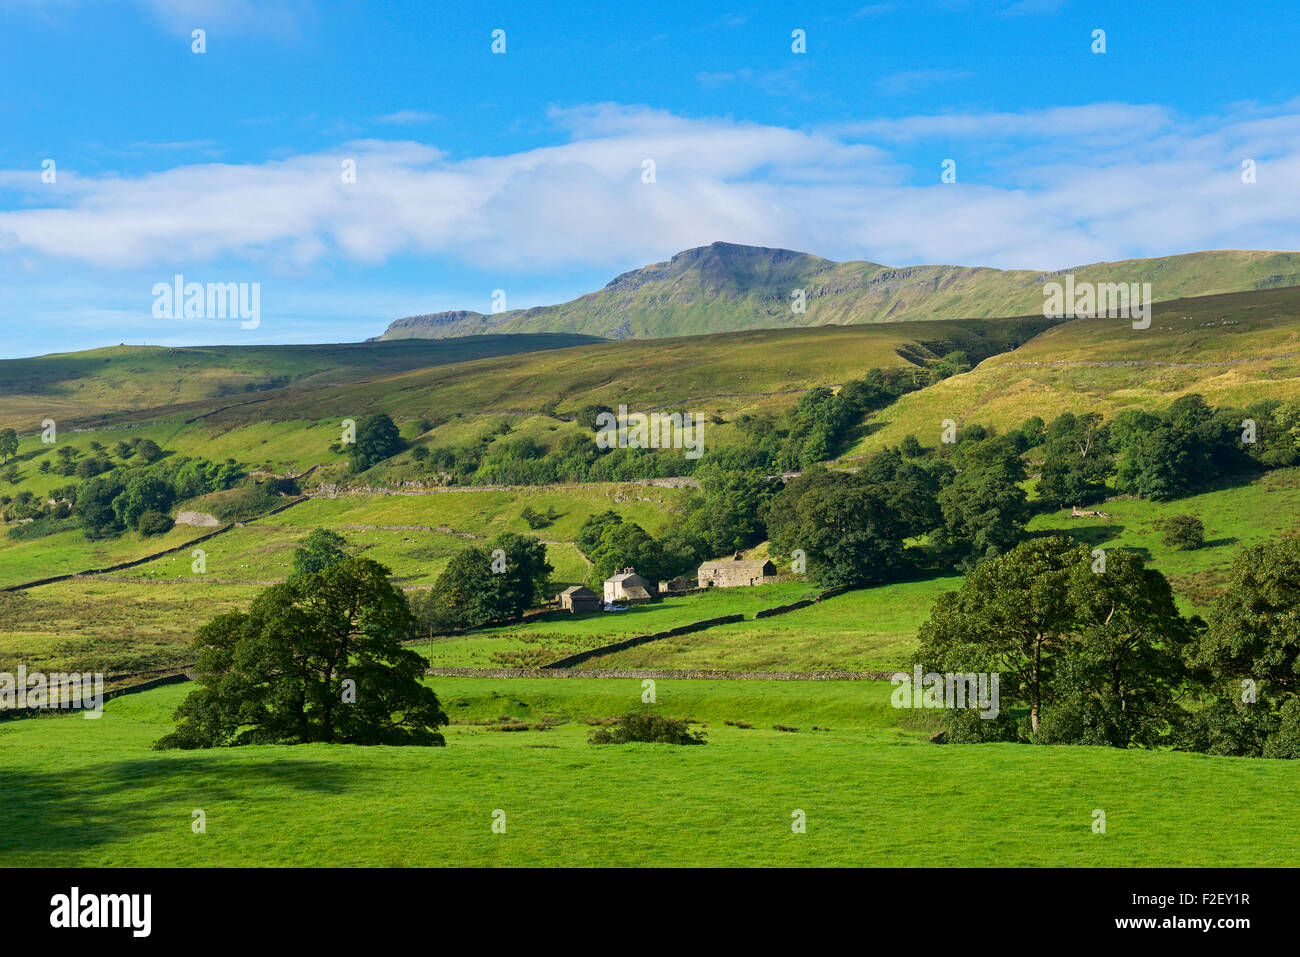 Mallerstang valley and Wild Boar Fell, Cumbria, England UK - Stock Image